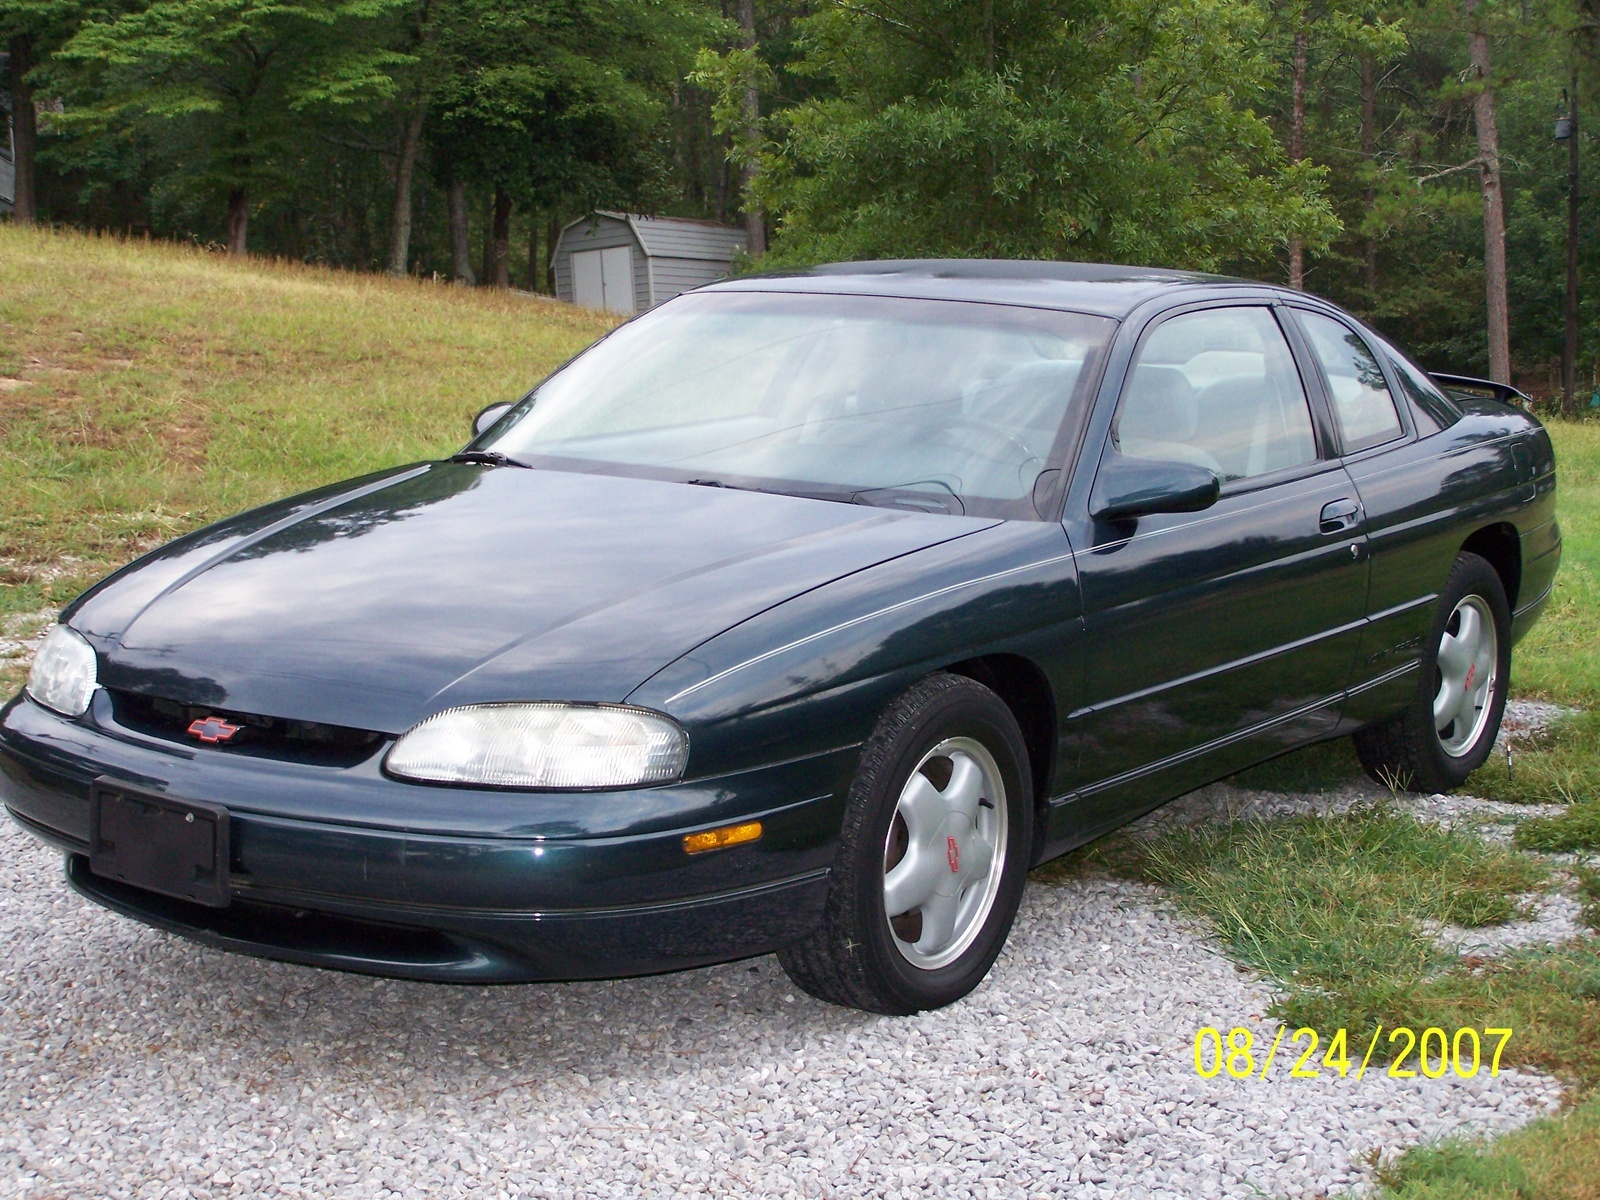 1995 chevrolet monte carlo test drive review cargurus 1995 chevrolet monte carlo test drive